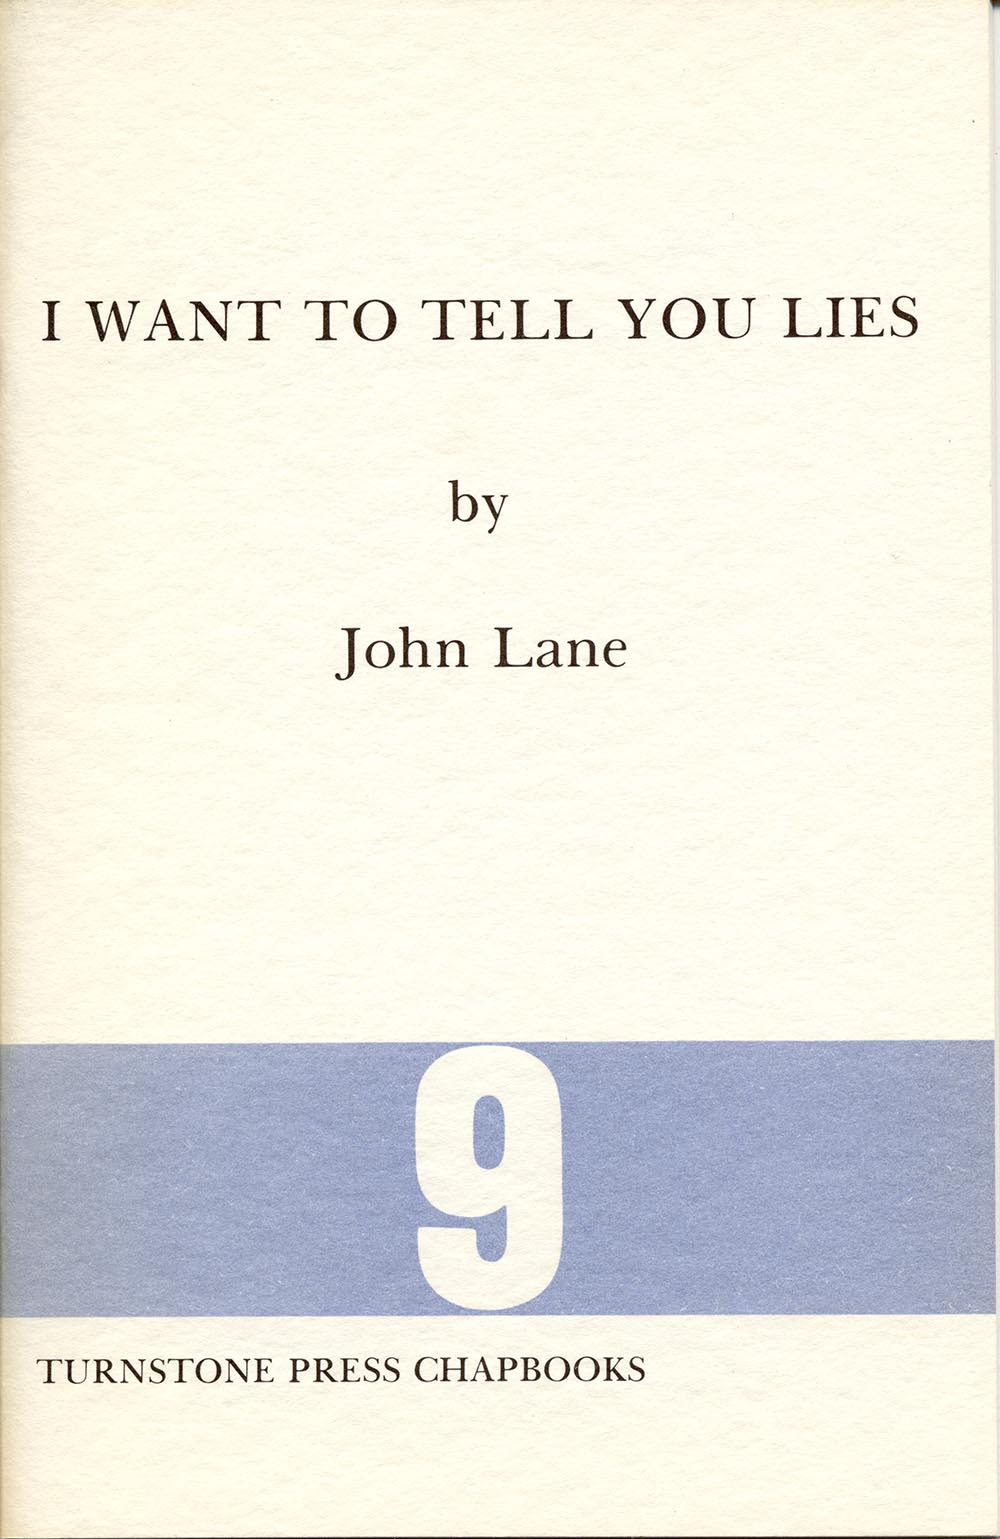 I Want to Tell You Lies by John Lane